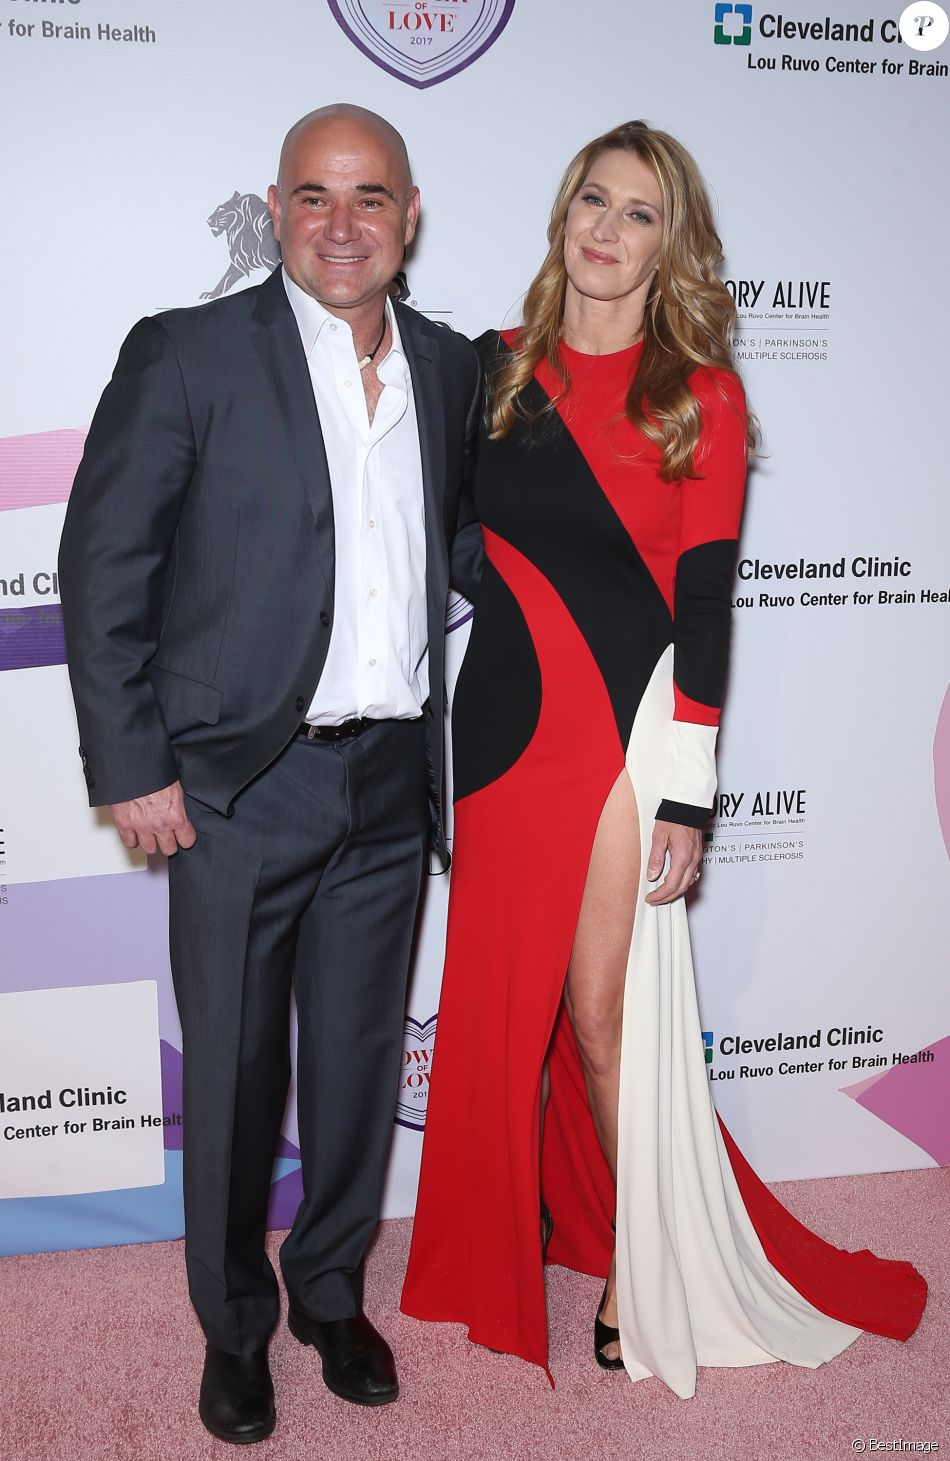 Andre Agassi et son épouse Steffi Graf - 21e édition du gala Power of Love® de la fondation Keep Memory Alive. Las Vegas, le 27 avril 2017. © Mjt/AdMedia via Zuma Press/Bestimage